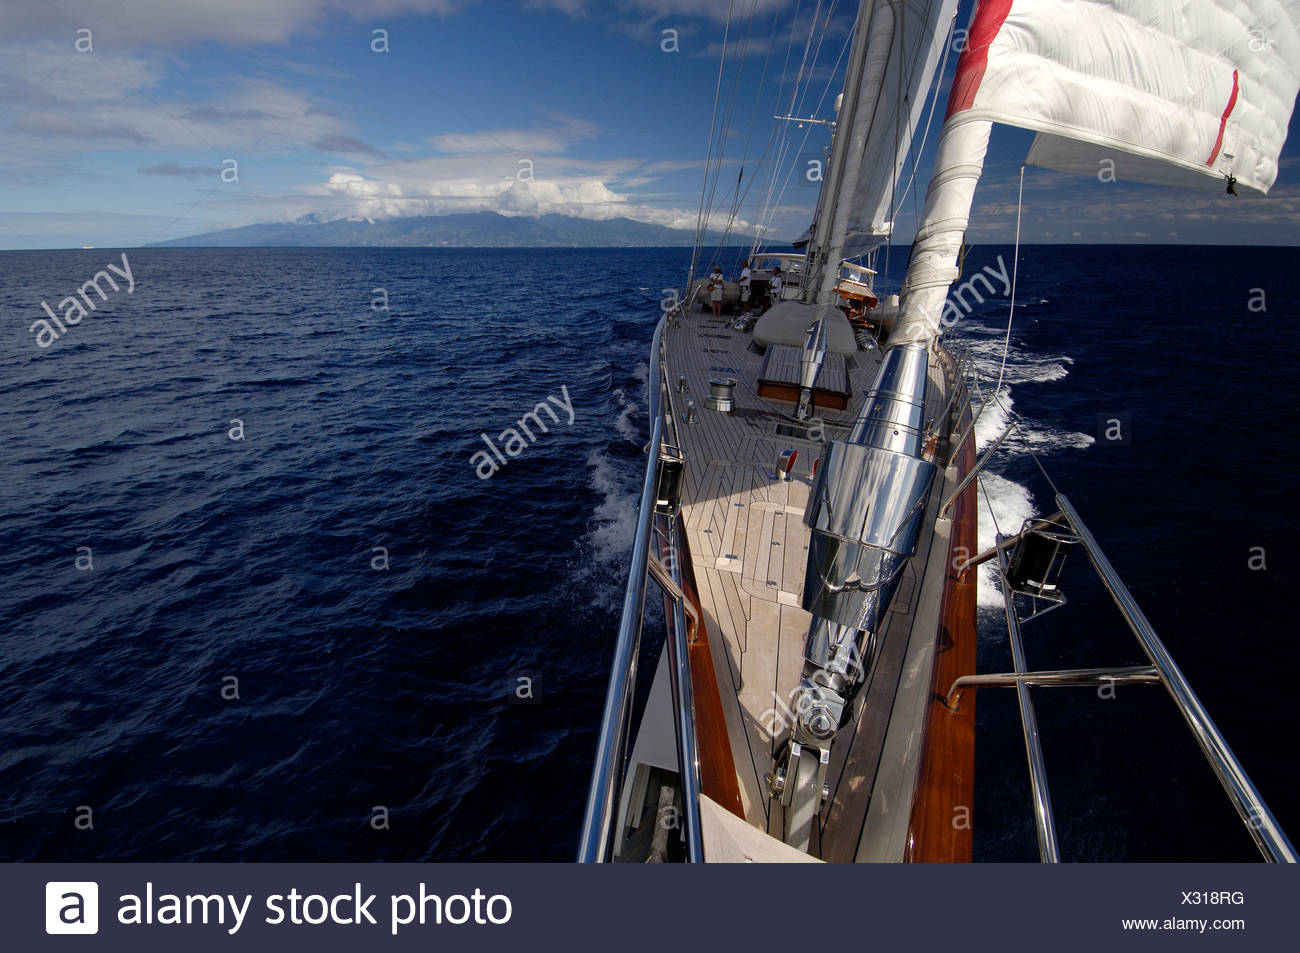 Dramatic photo taken from the bow of SY 'Adele', 180 foot Hoek Design, sailing in French Polynesia, 2006.  Non editorial uses mu - Stock Image